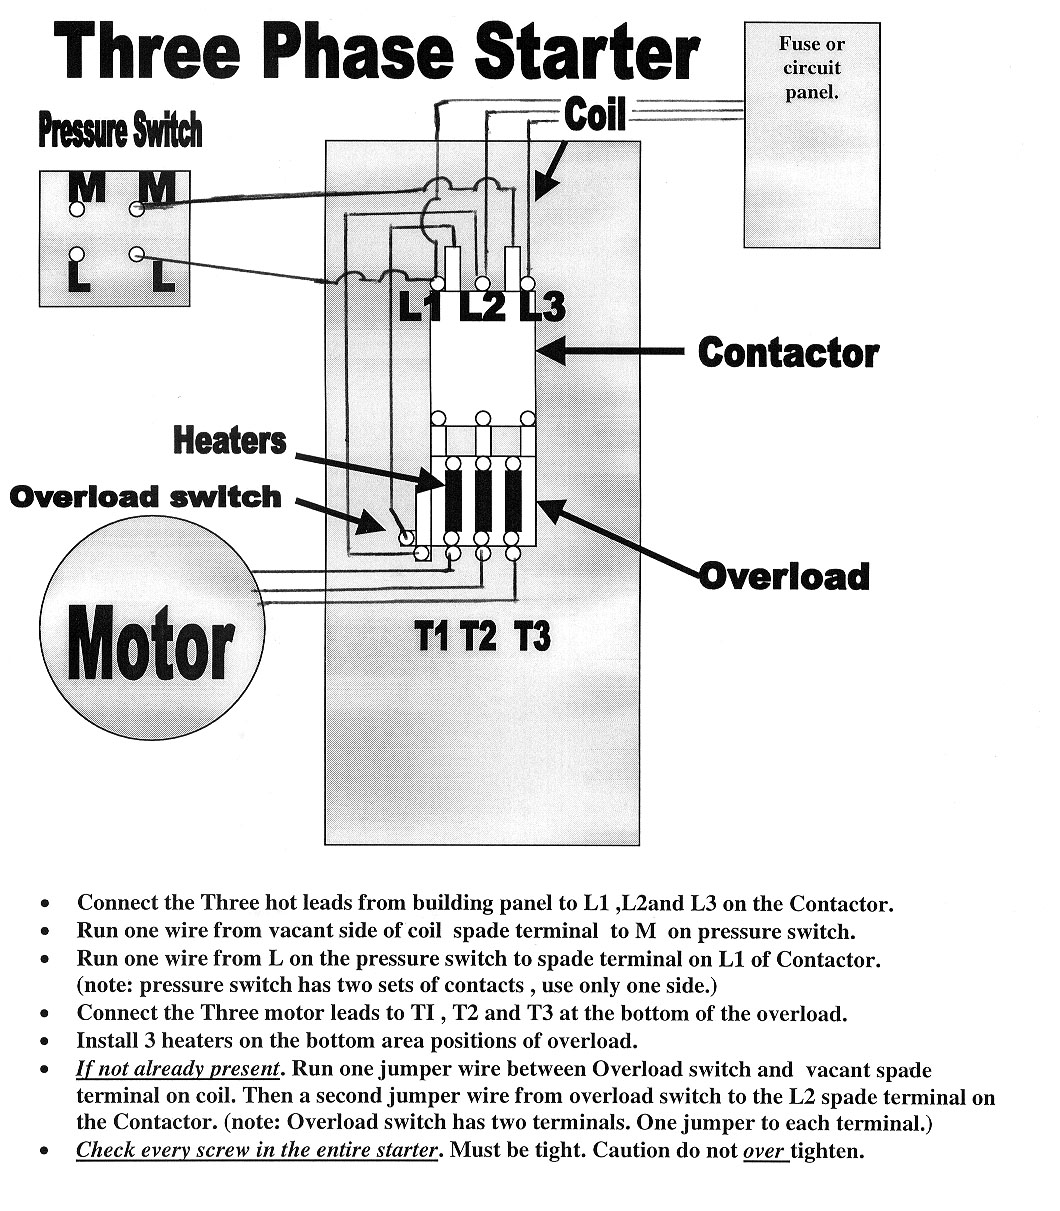 small resolution of 3 phase switch wiring diagram wiring library diagram h9 480 240 120 transformer wiring diagram 3 phase switch wiring diagram